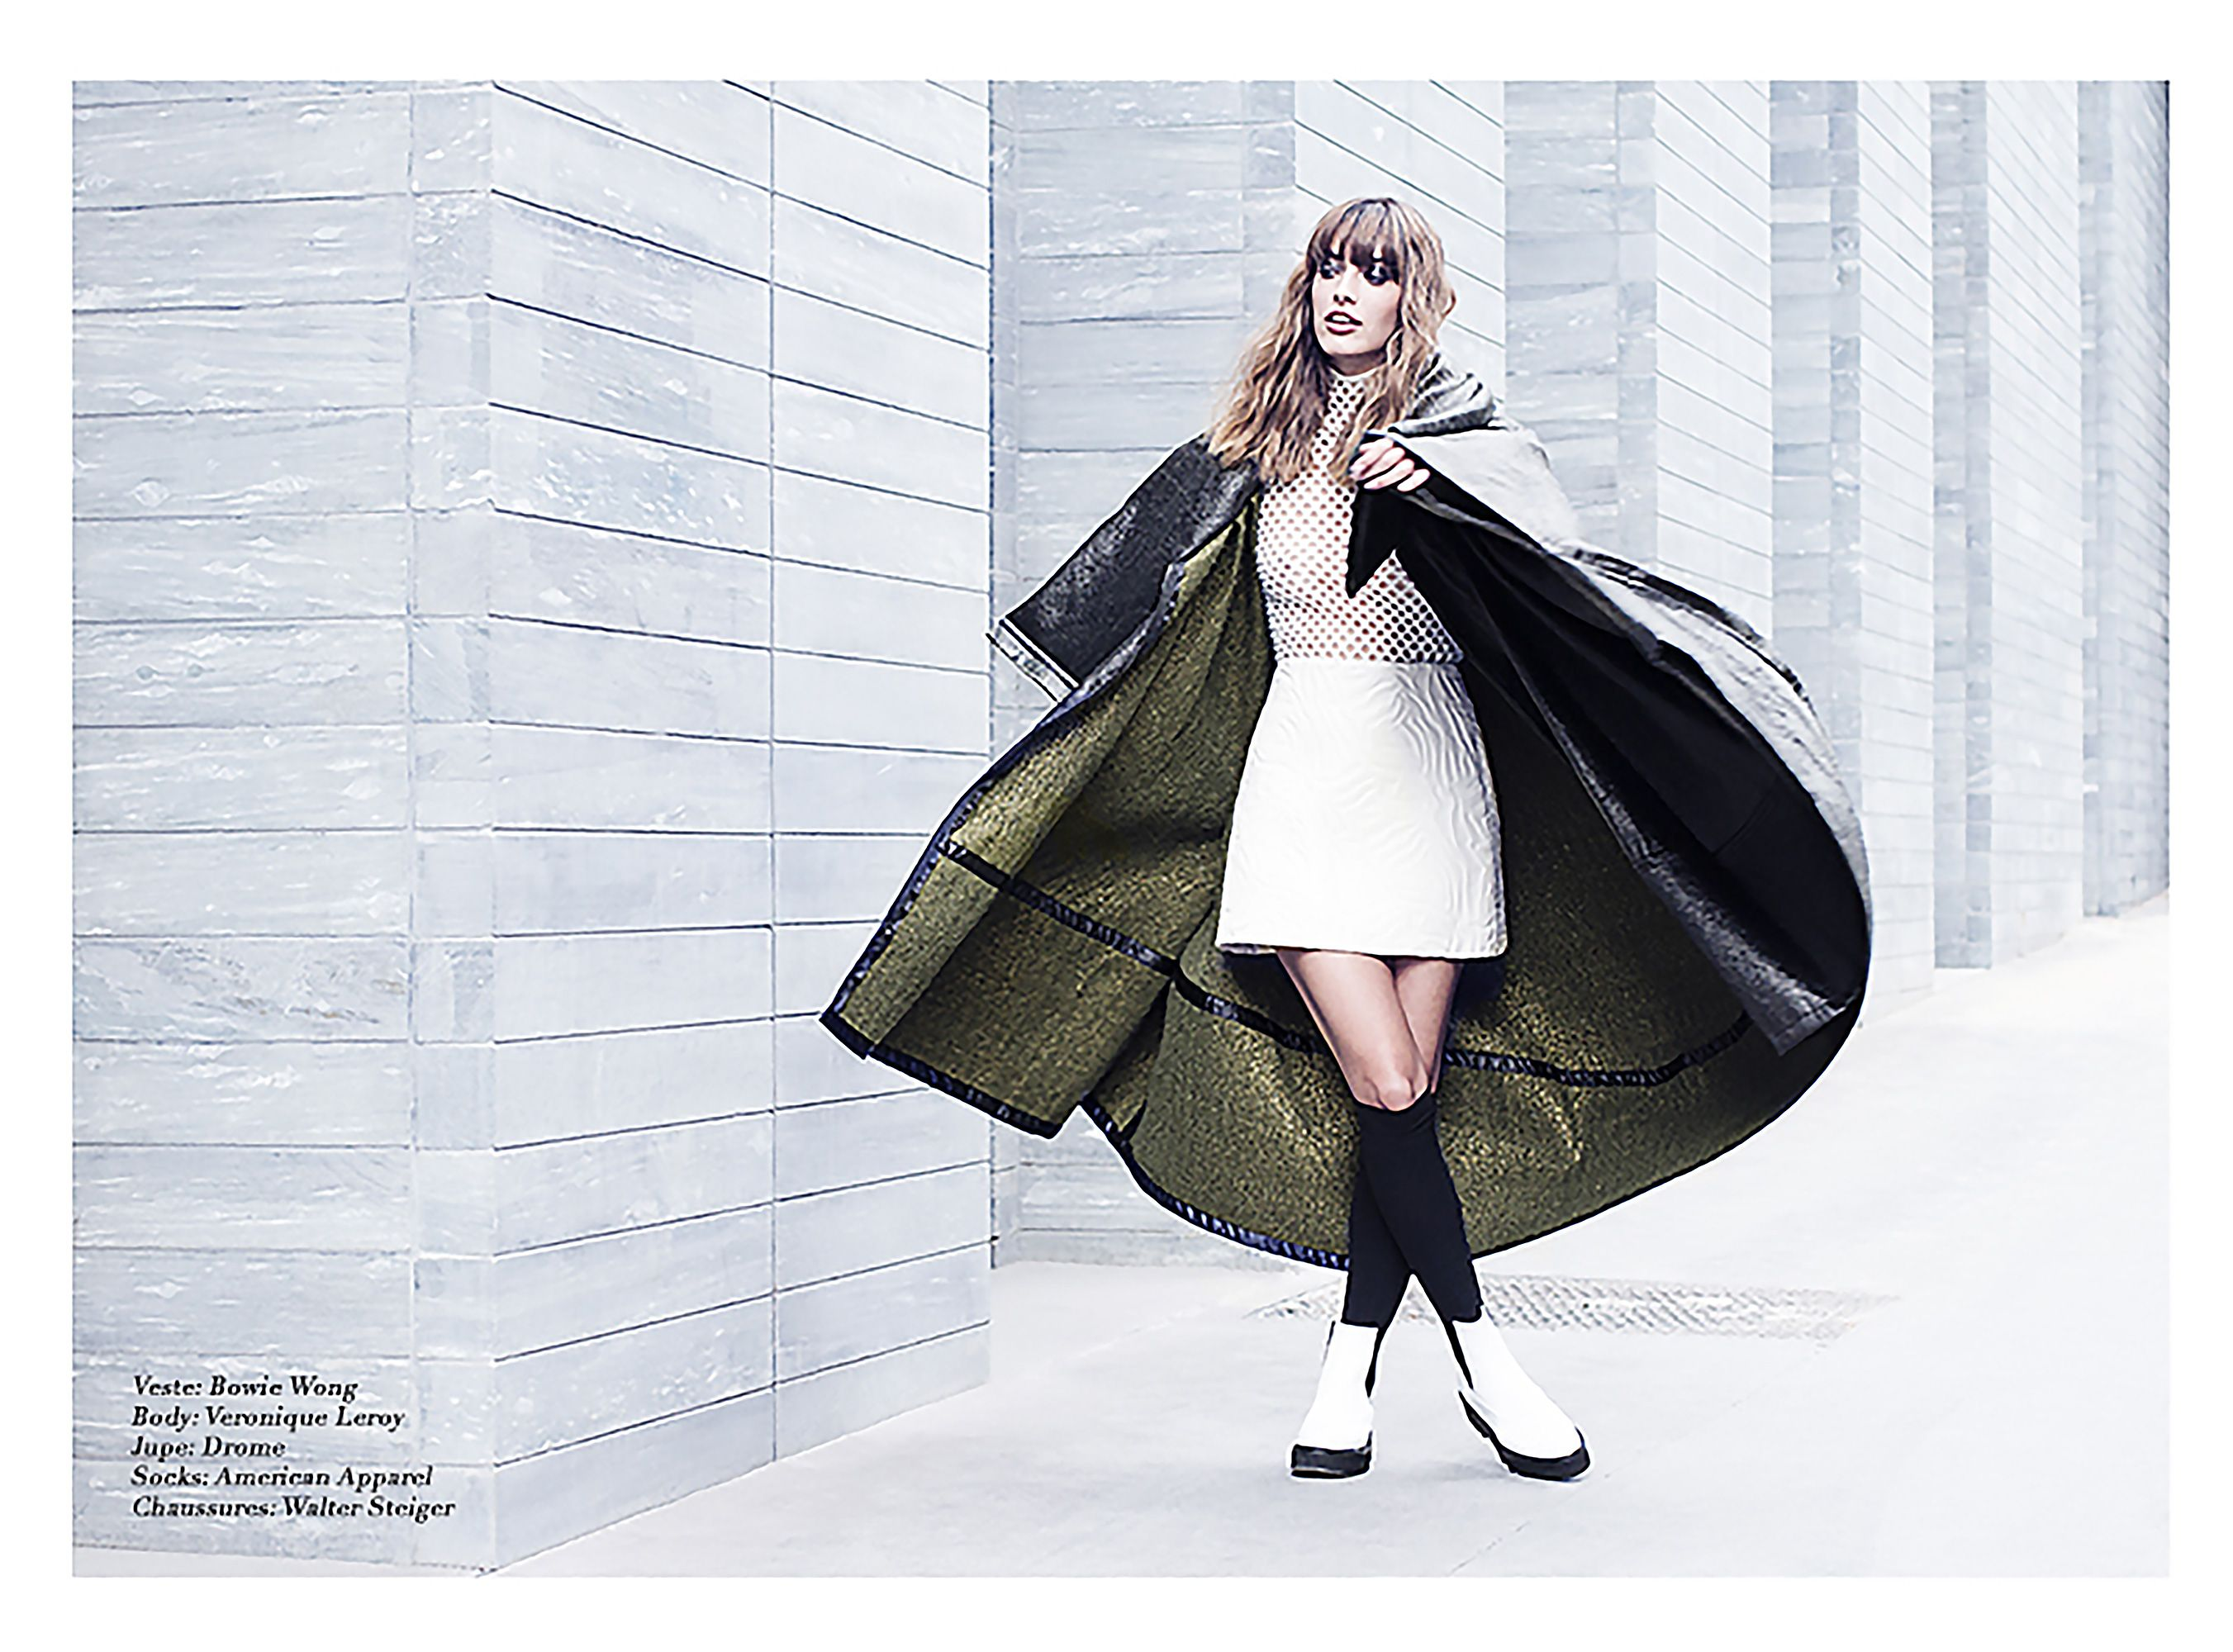 DROMe embossed leather skirt featured Make the Trendz magazine